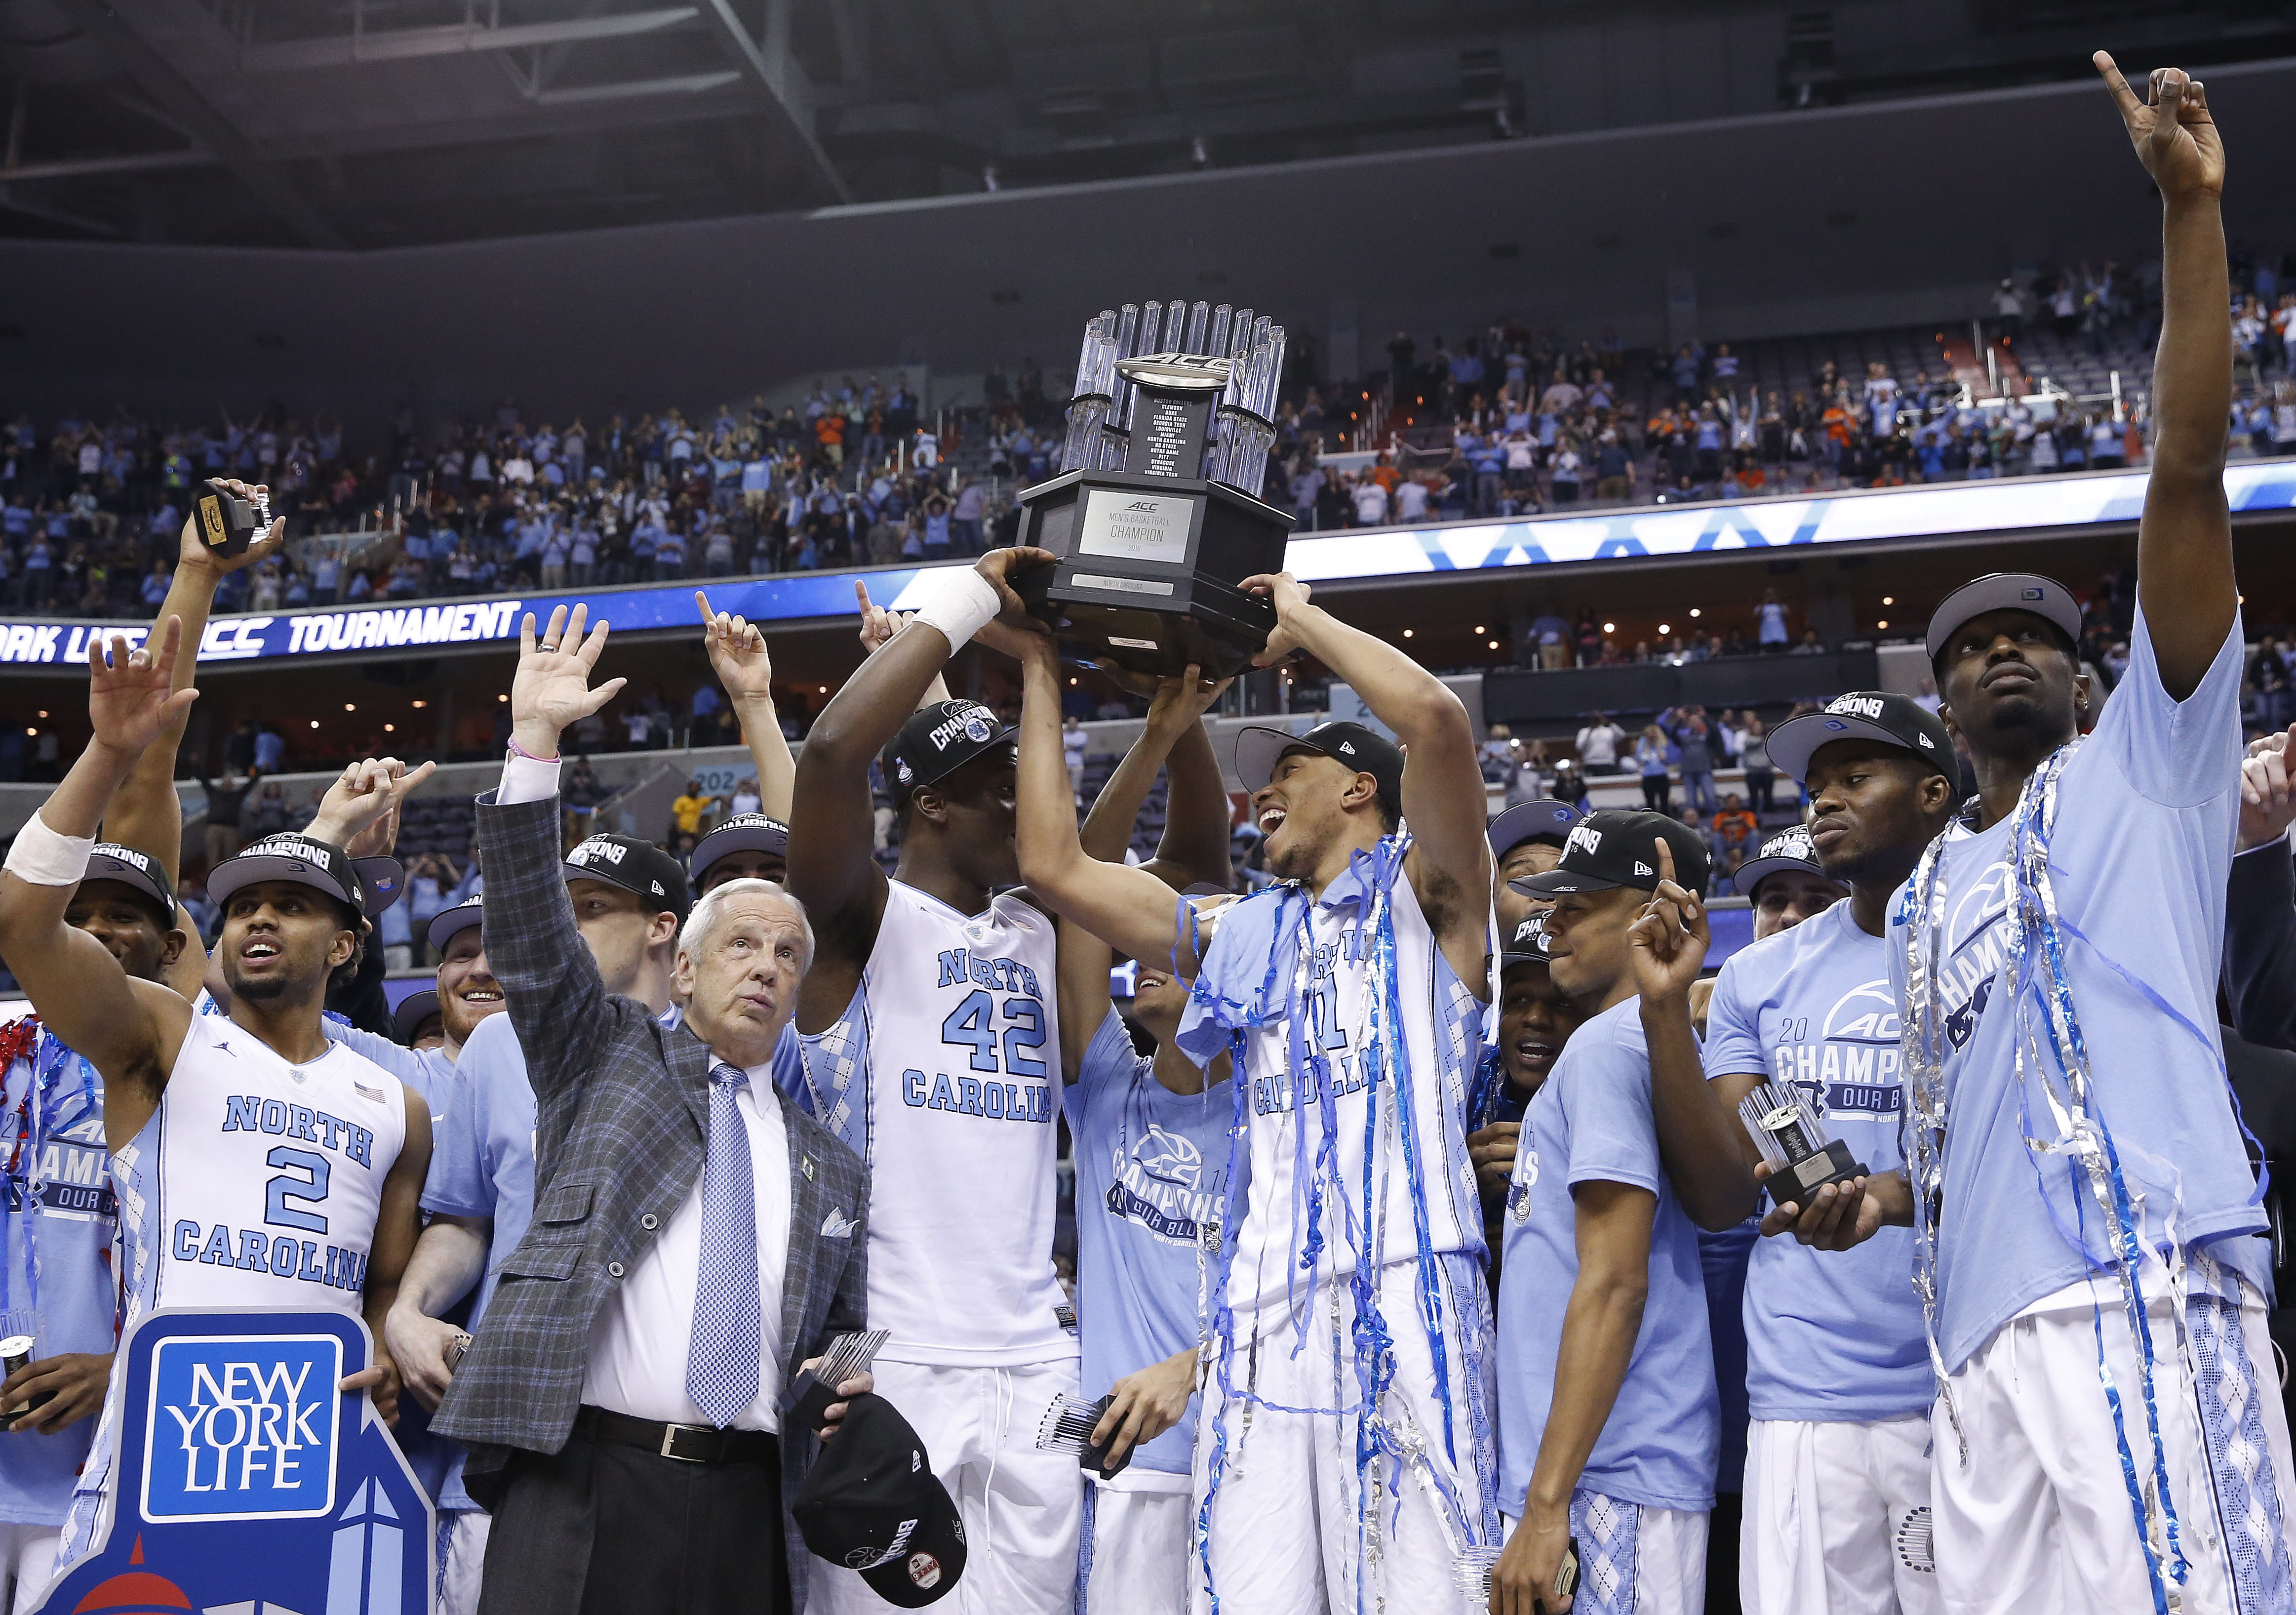 North Carolina head coach Roy Williams and players celebrate after an NCAA college basketball game in the championship of the Atlantic Coast Conference tournament against Virginia, Saturday, March 12, 2016, in Washington. North Carolina won 61-57. (AP Pho